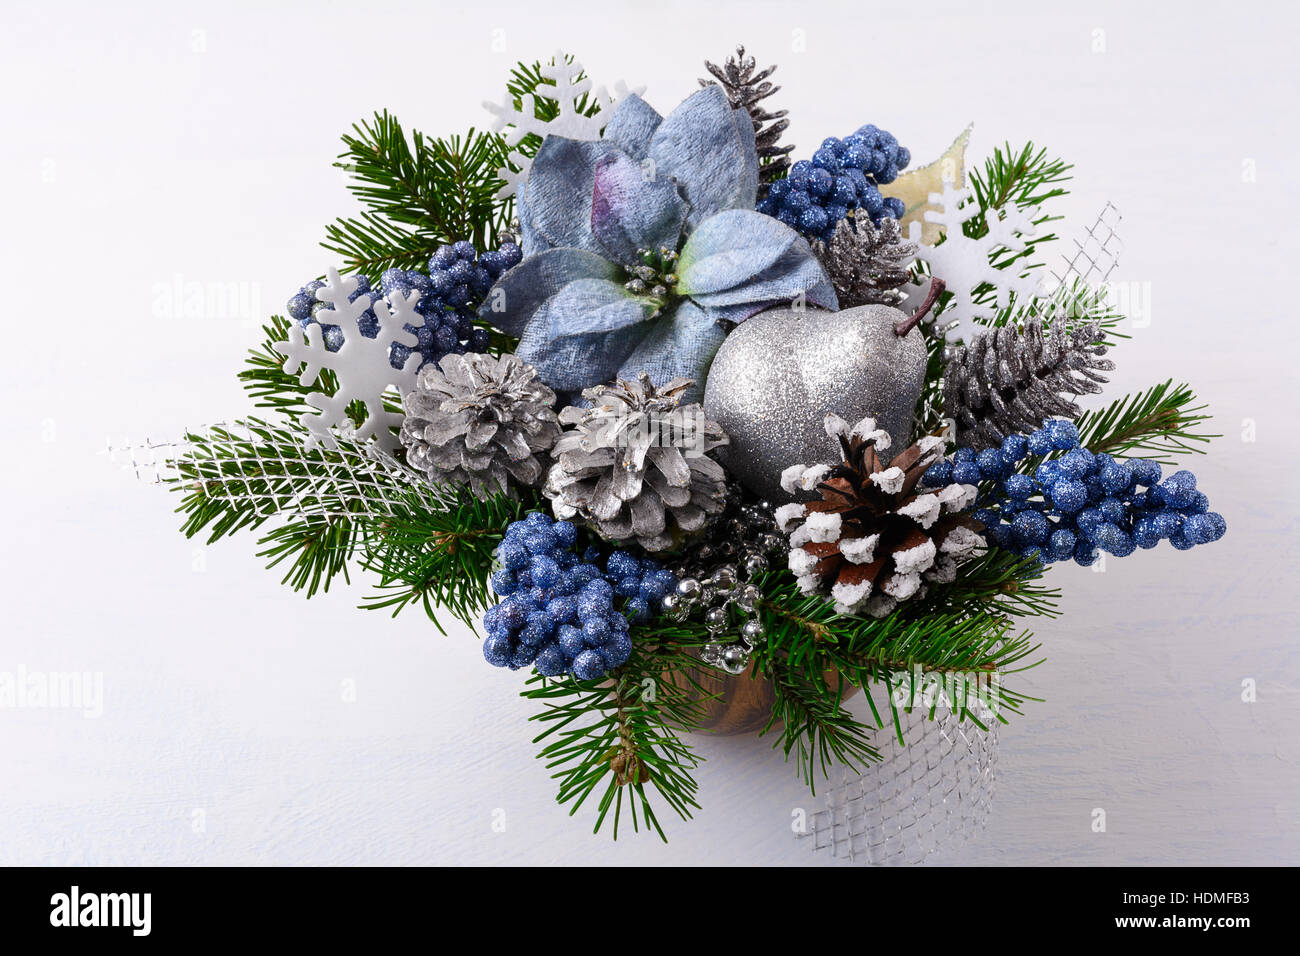 Christmas greenery with silver glitter decor and blue silk stock christmas greenery with silver glitter decor and blue silk poinsettias artificial christmas flower arrangement with pine cones and fir branches chri mightylinksfo